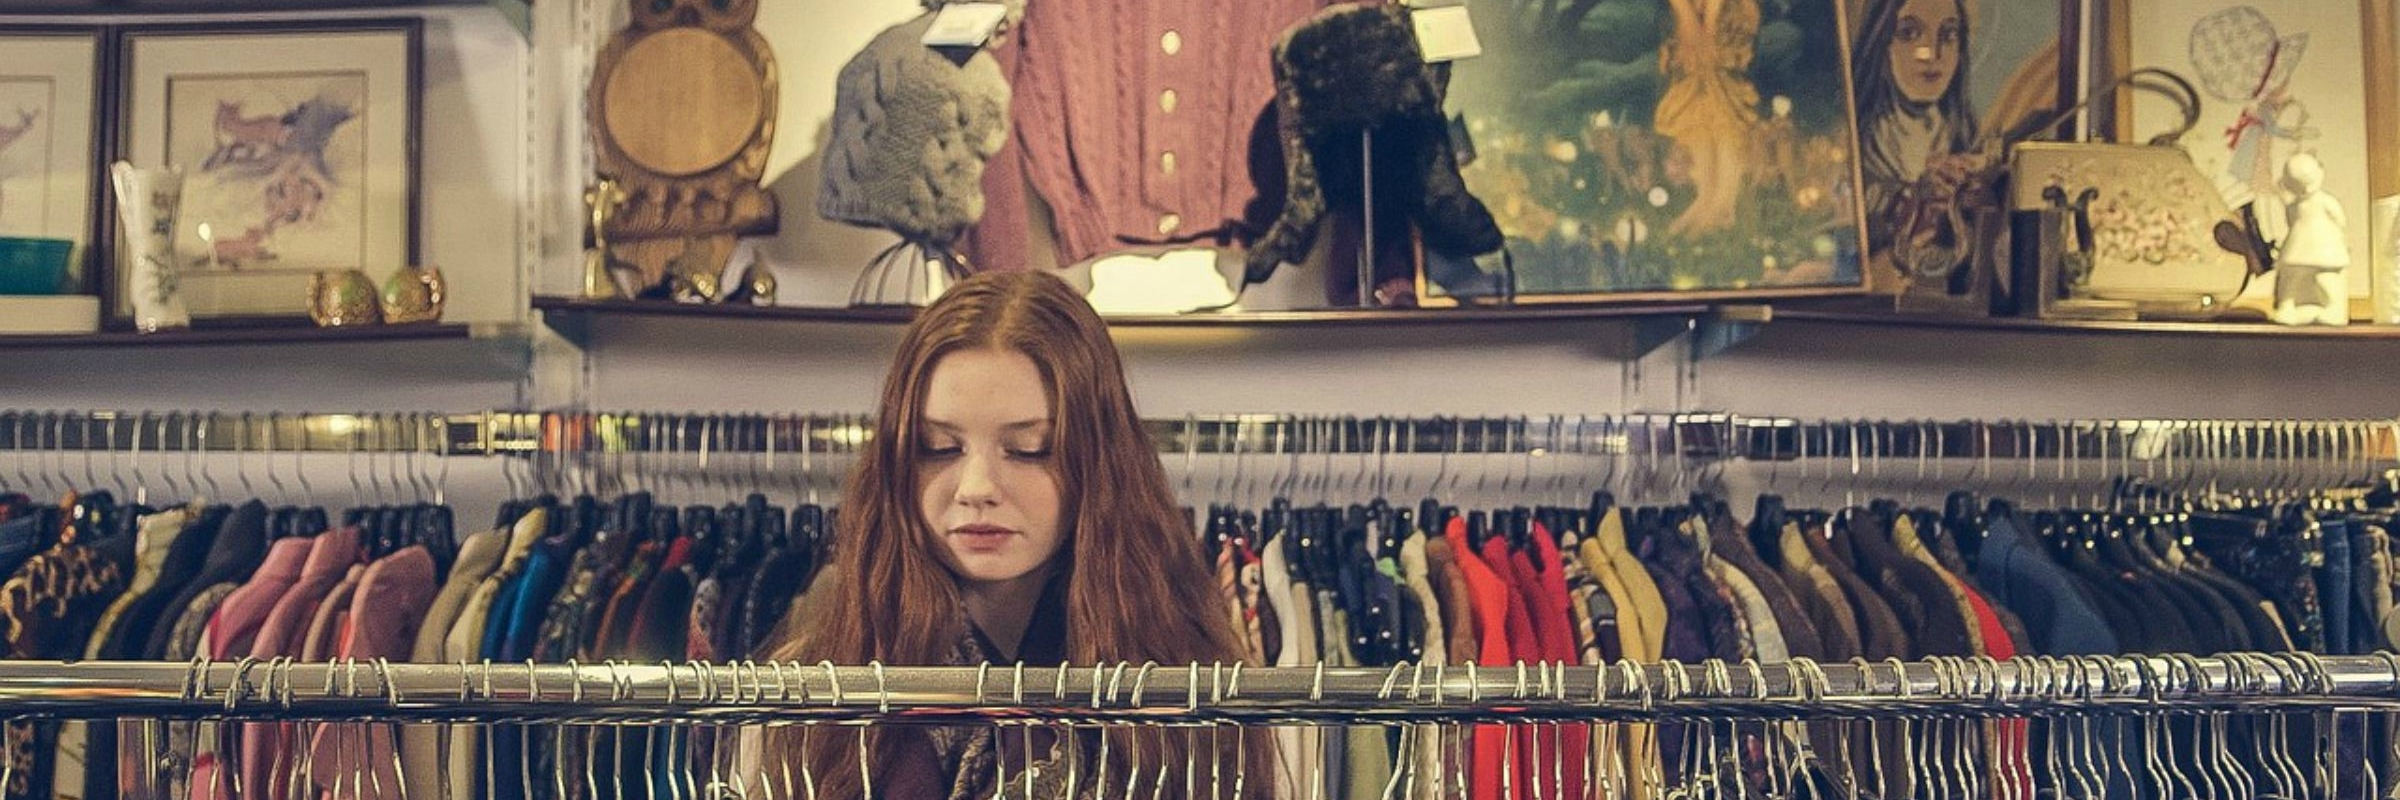 Woman shopping for her Signature Style